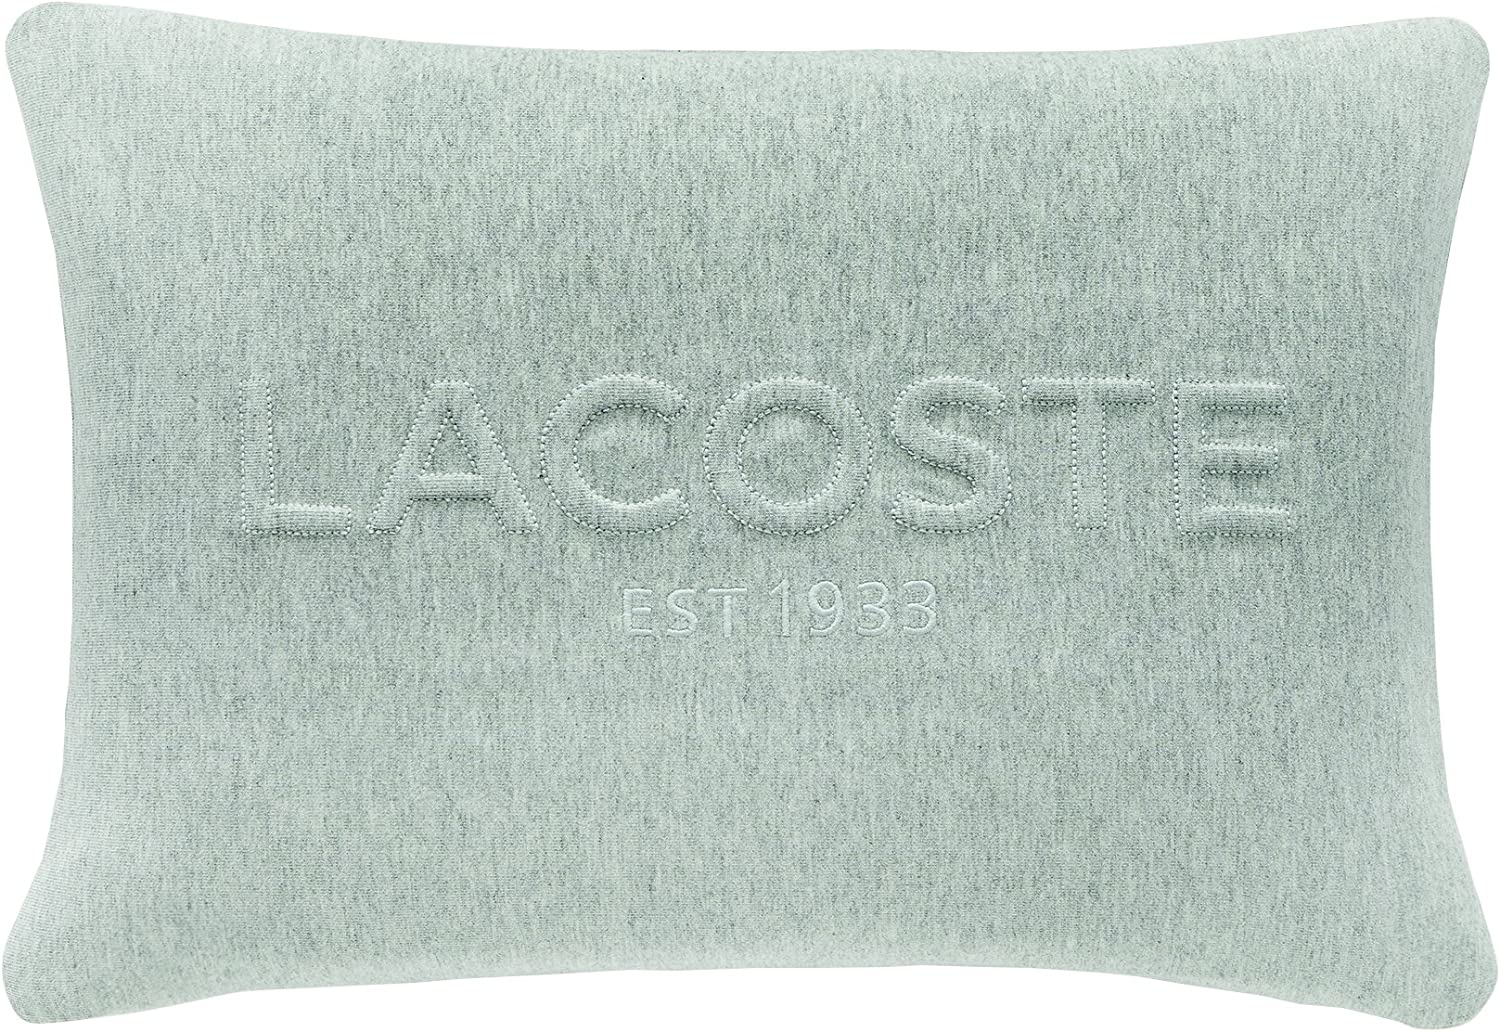 Lacoste Embossed Lacoste 12x18 Throw Pillow, Heather Grey